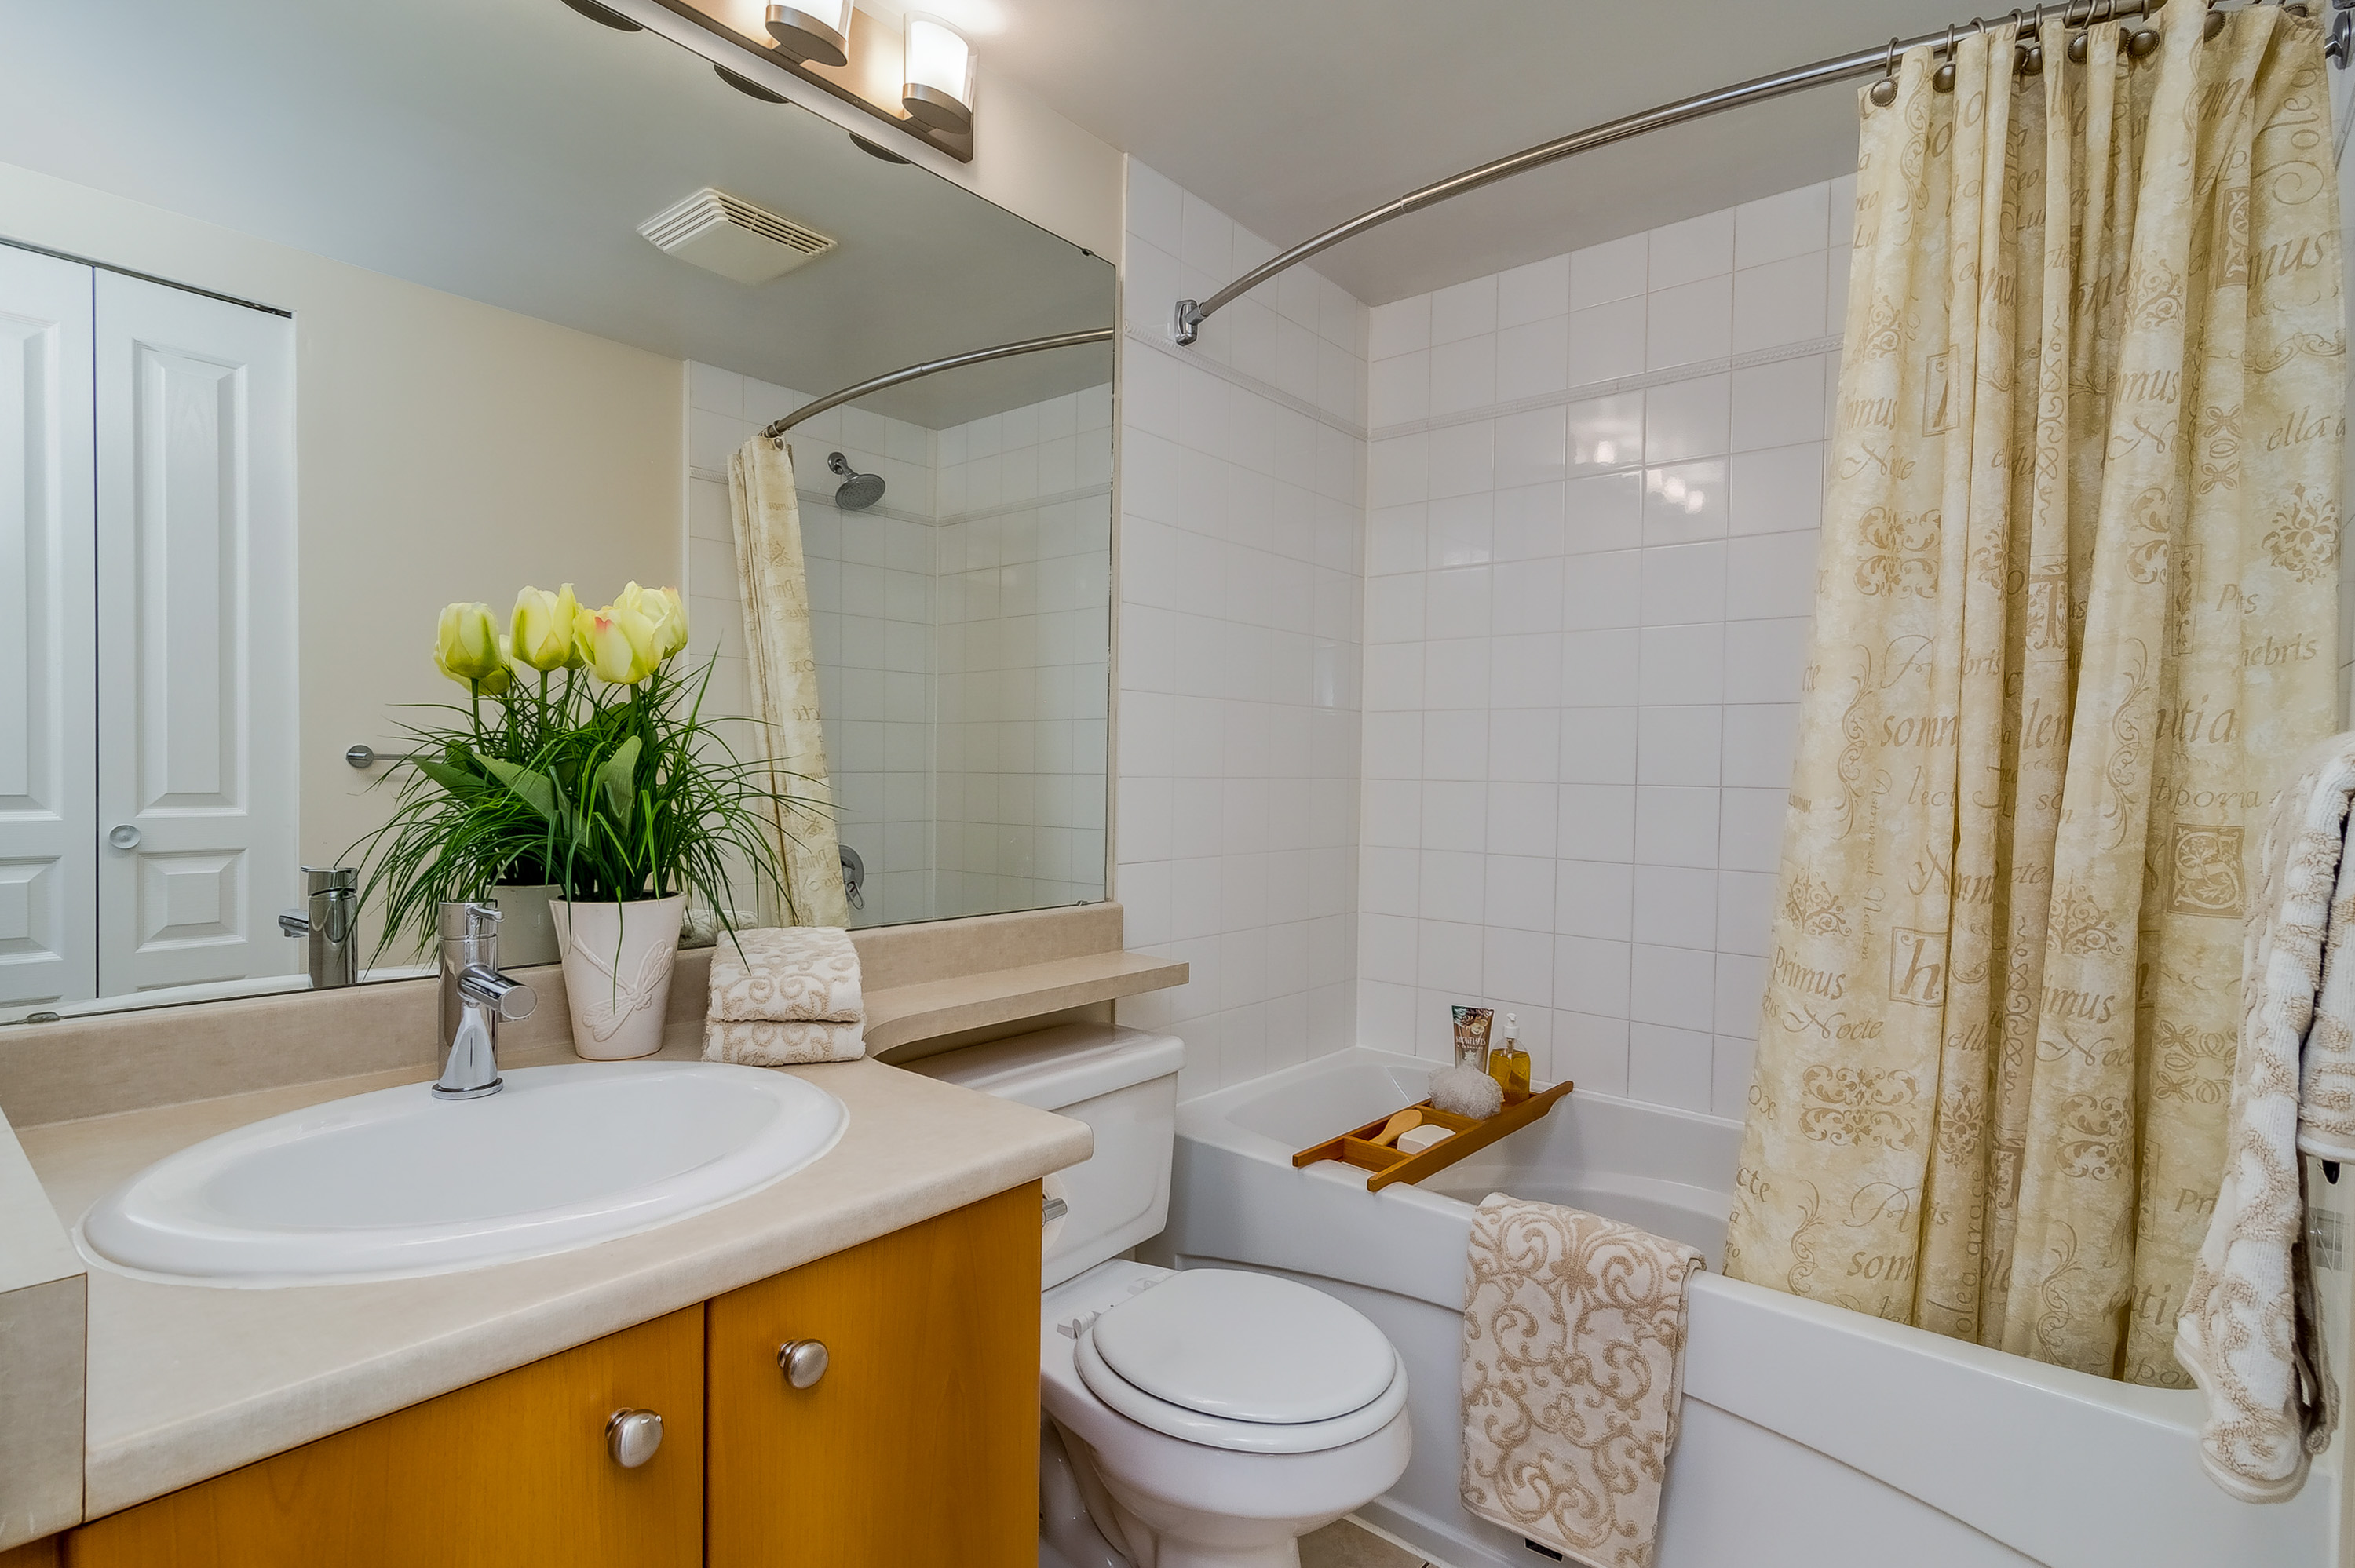 Bathroom in the Northland apartments complex